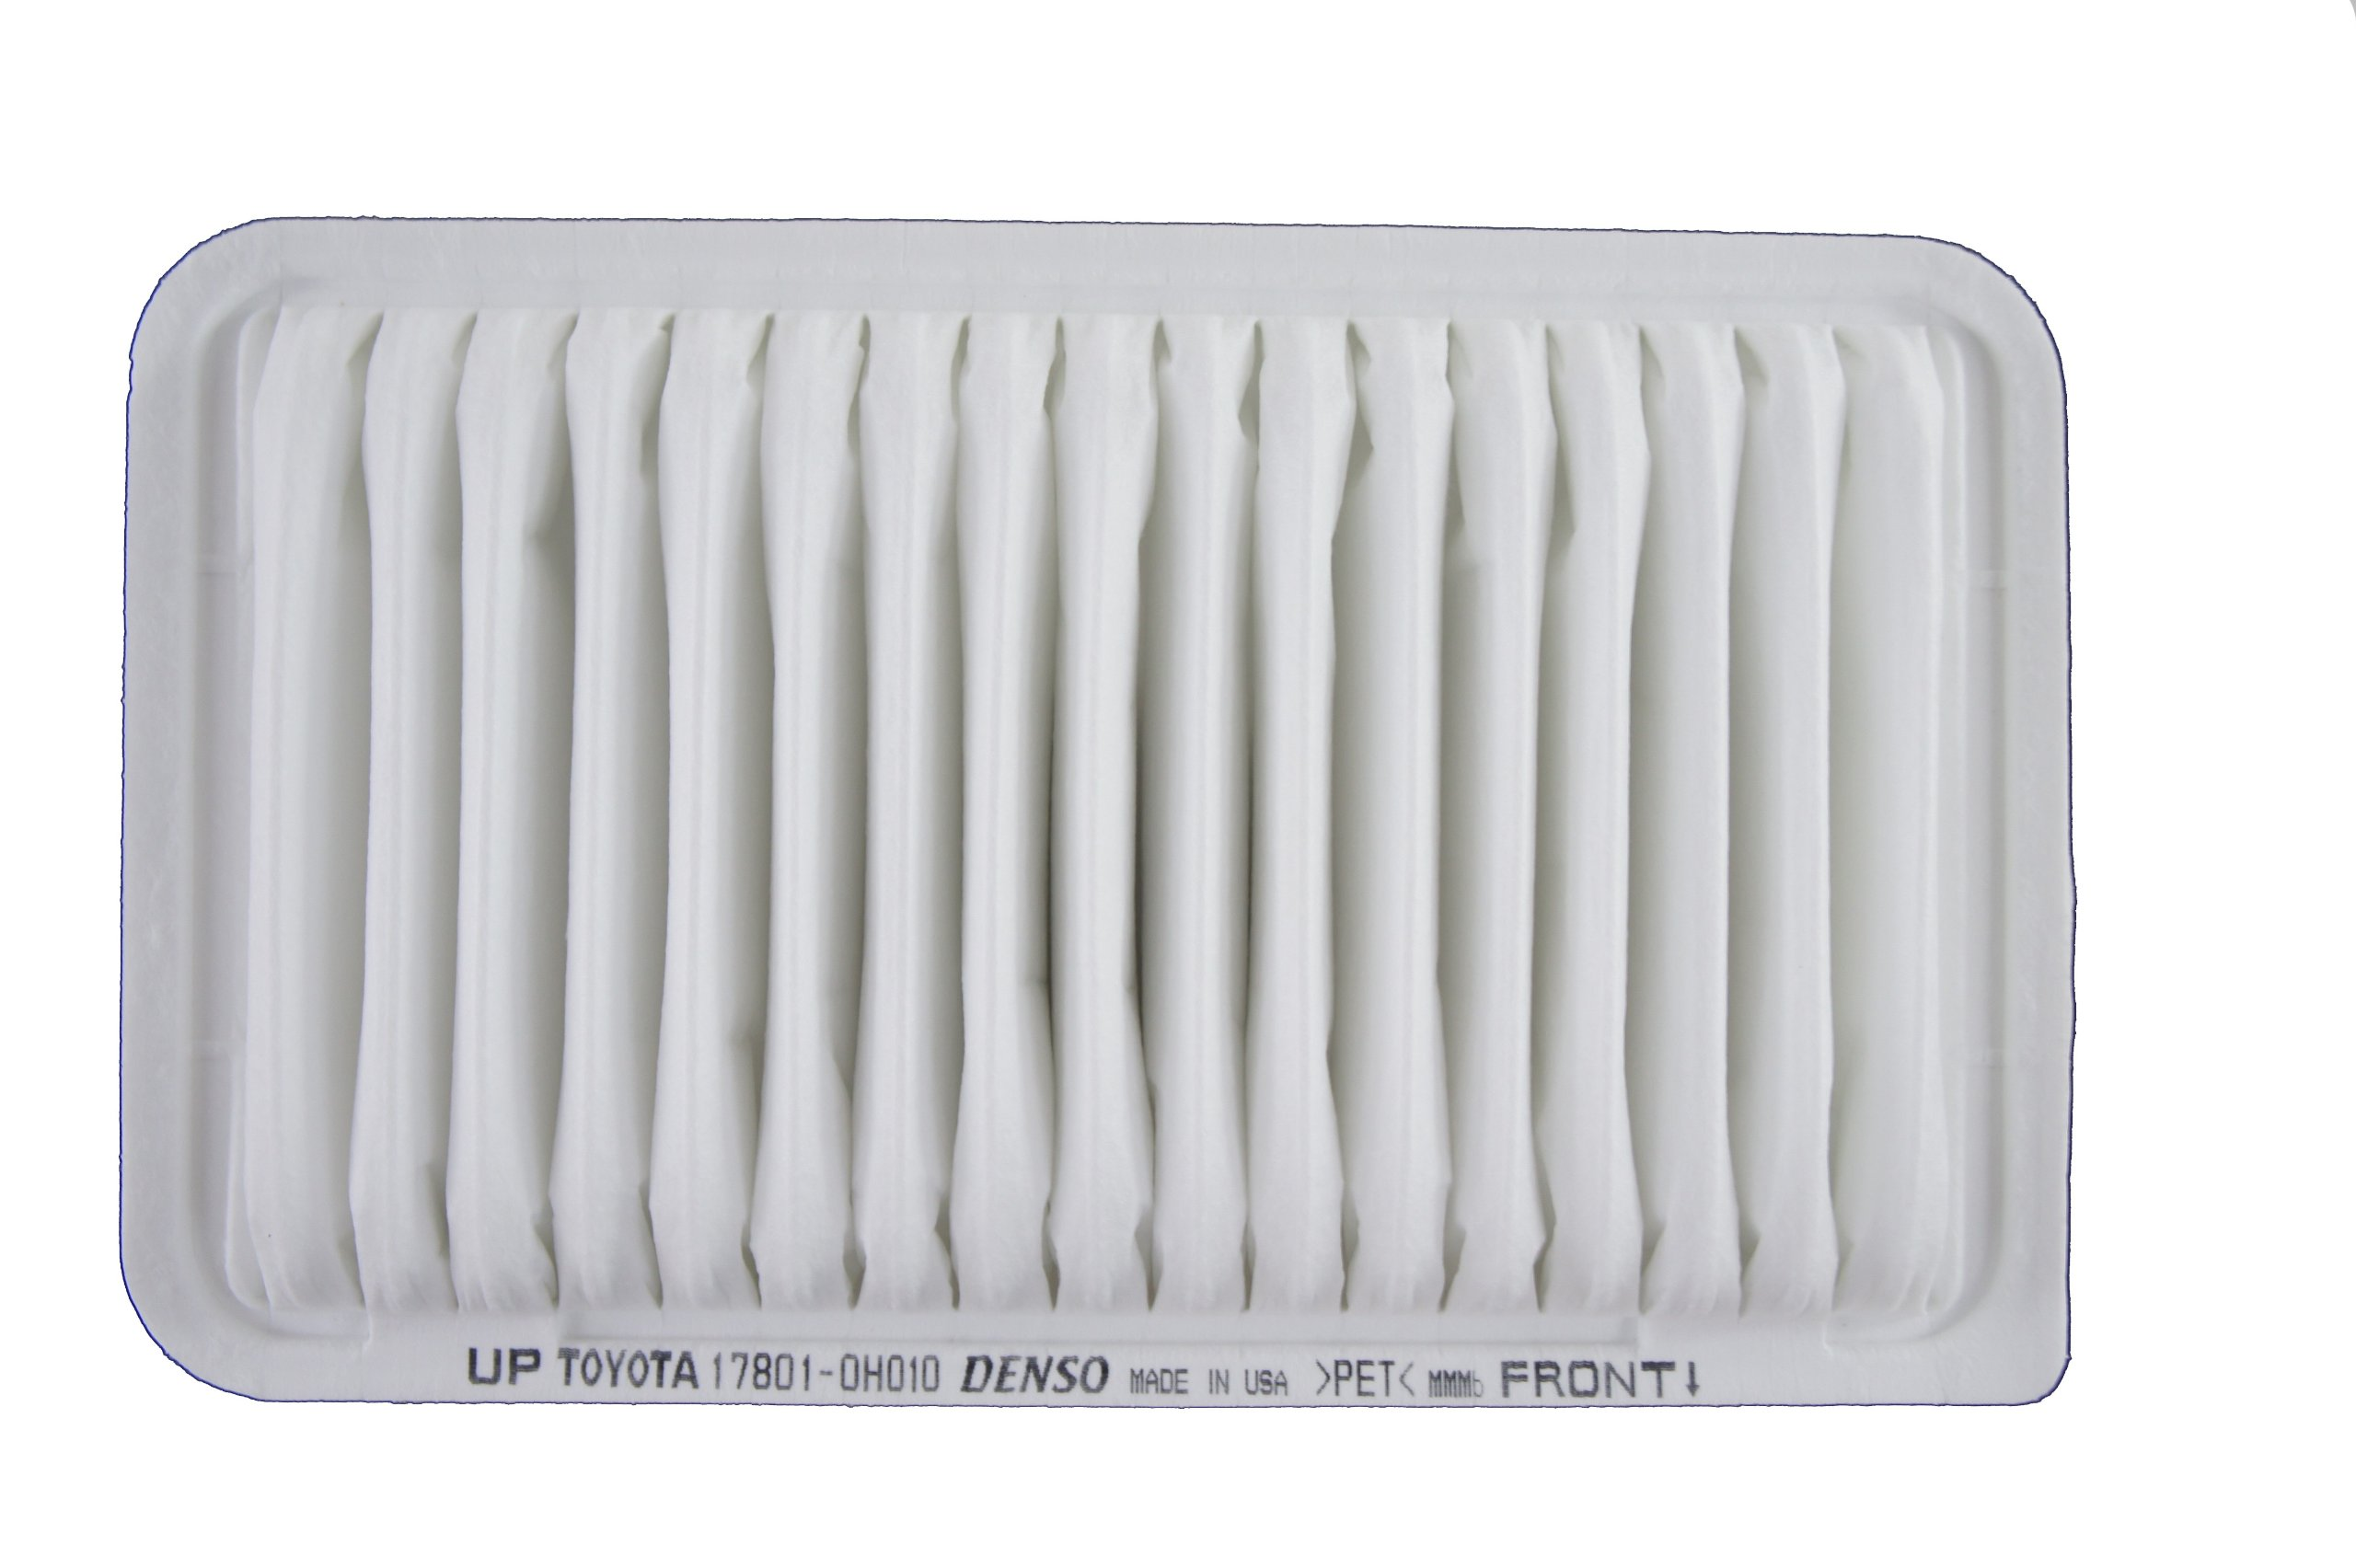 Toyota Genuine Parts 17801-YZZ01 Air Filter Element